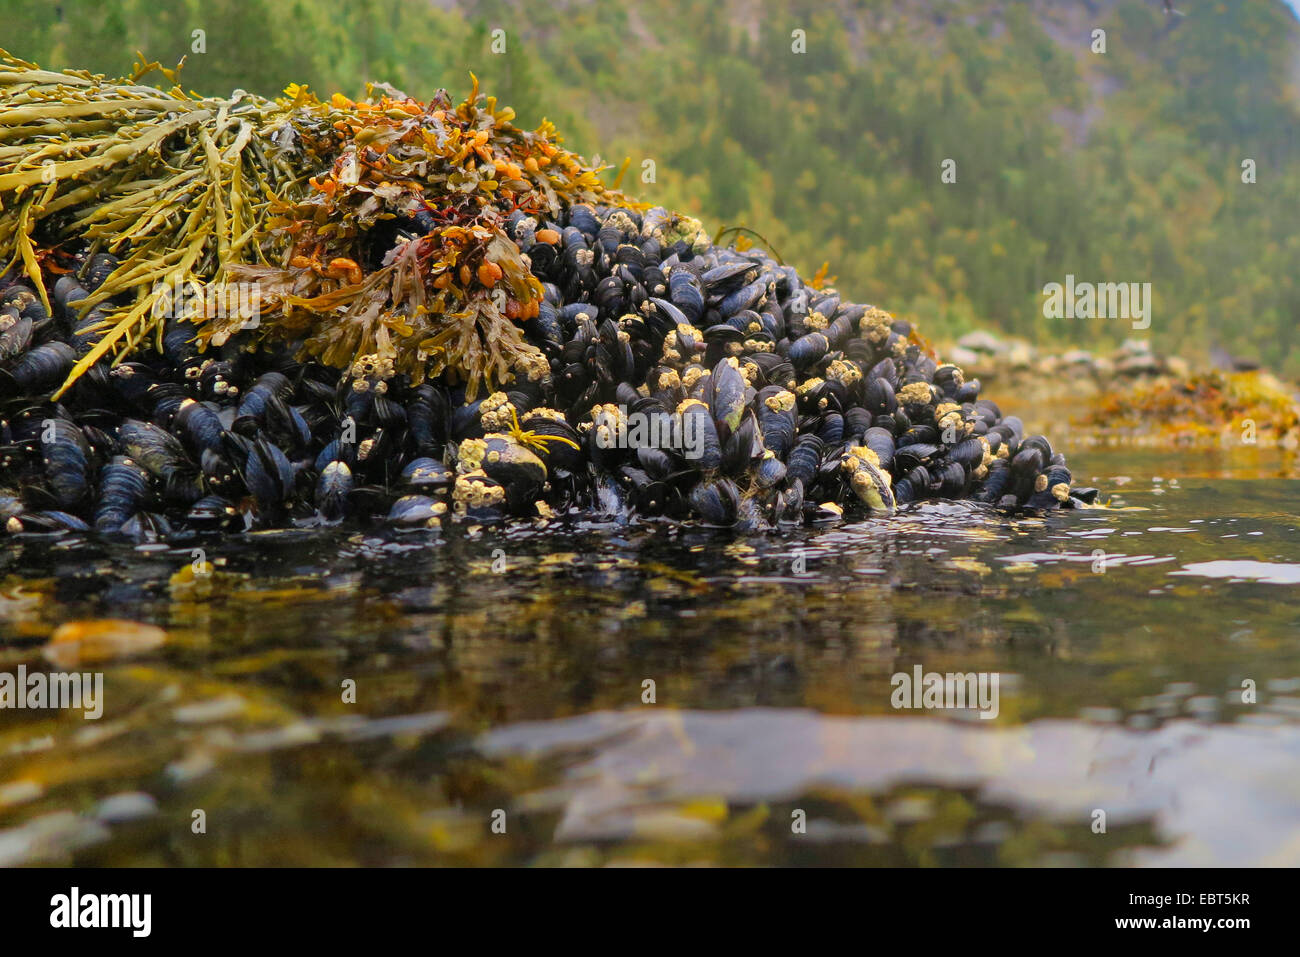 mussels (Mytiloidea), colony of blue mussels at ebb-tide with bladder wrack, Norway, Nordland - Stock Image